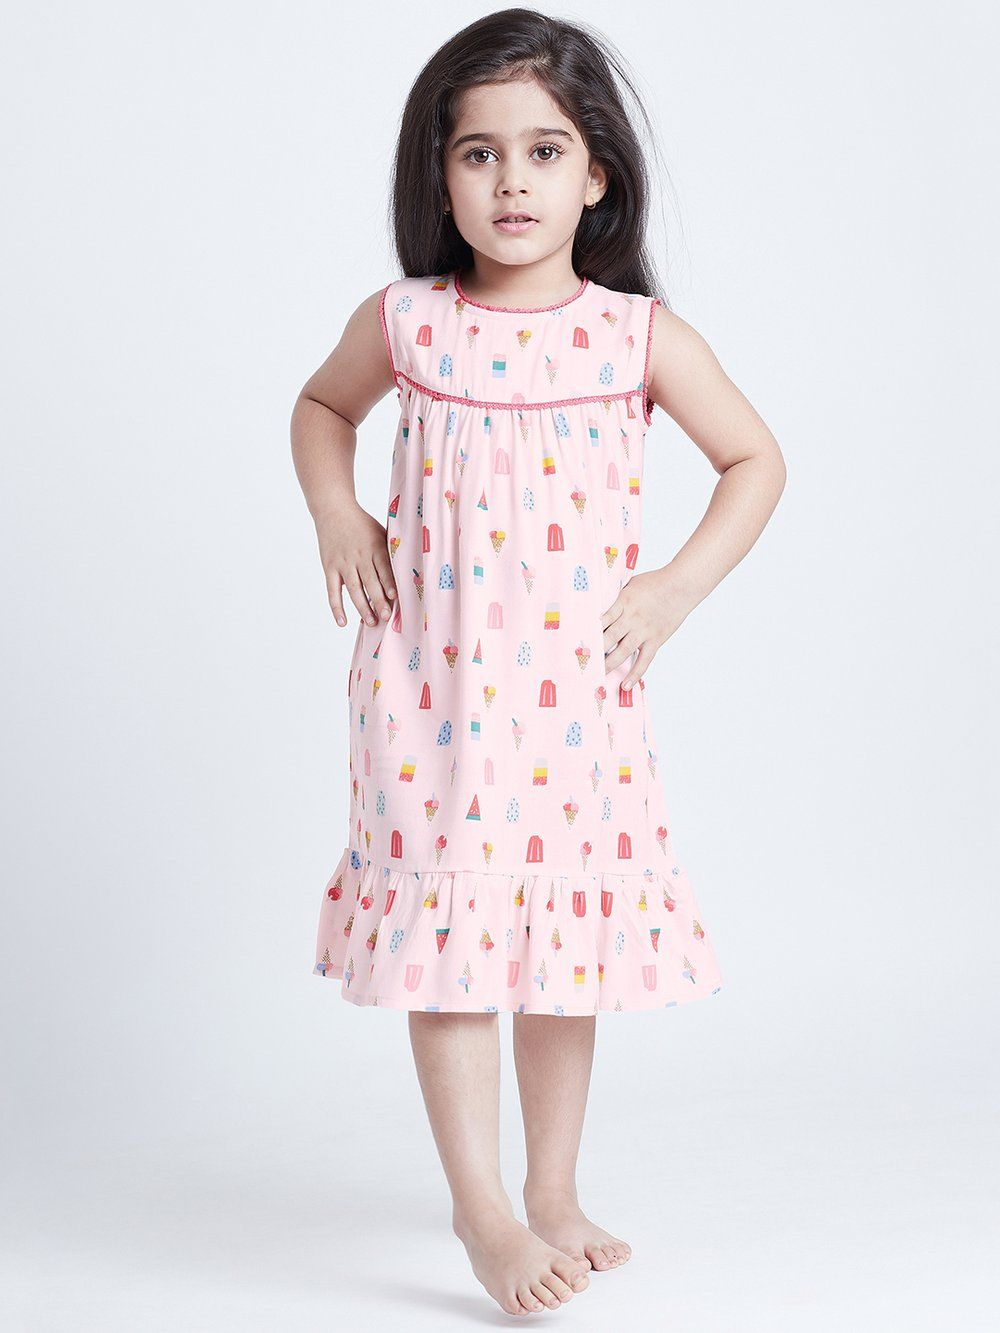 Bohobi Sweet Cream Kids Night Maxi Color: Pink Fabric: Cotton Pattern:  Quirky Fit: Relaxed Fit Length: Below Knee Lengt… in 2020   Colorful  dresses, Pink print, Night dress